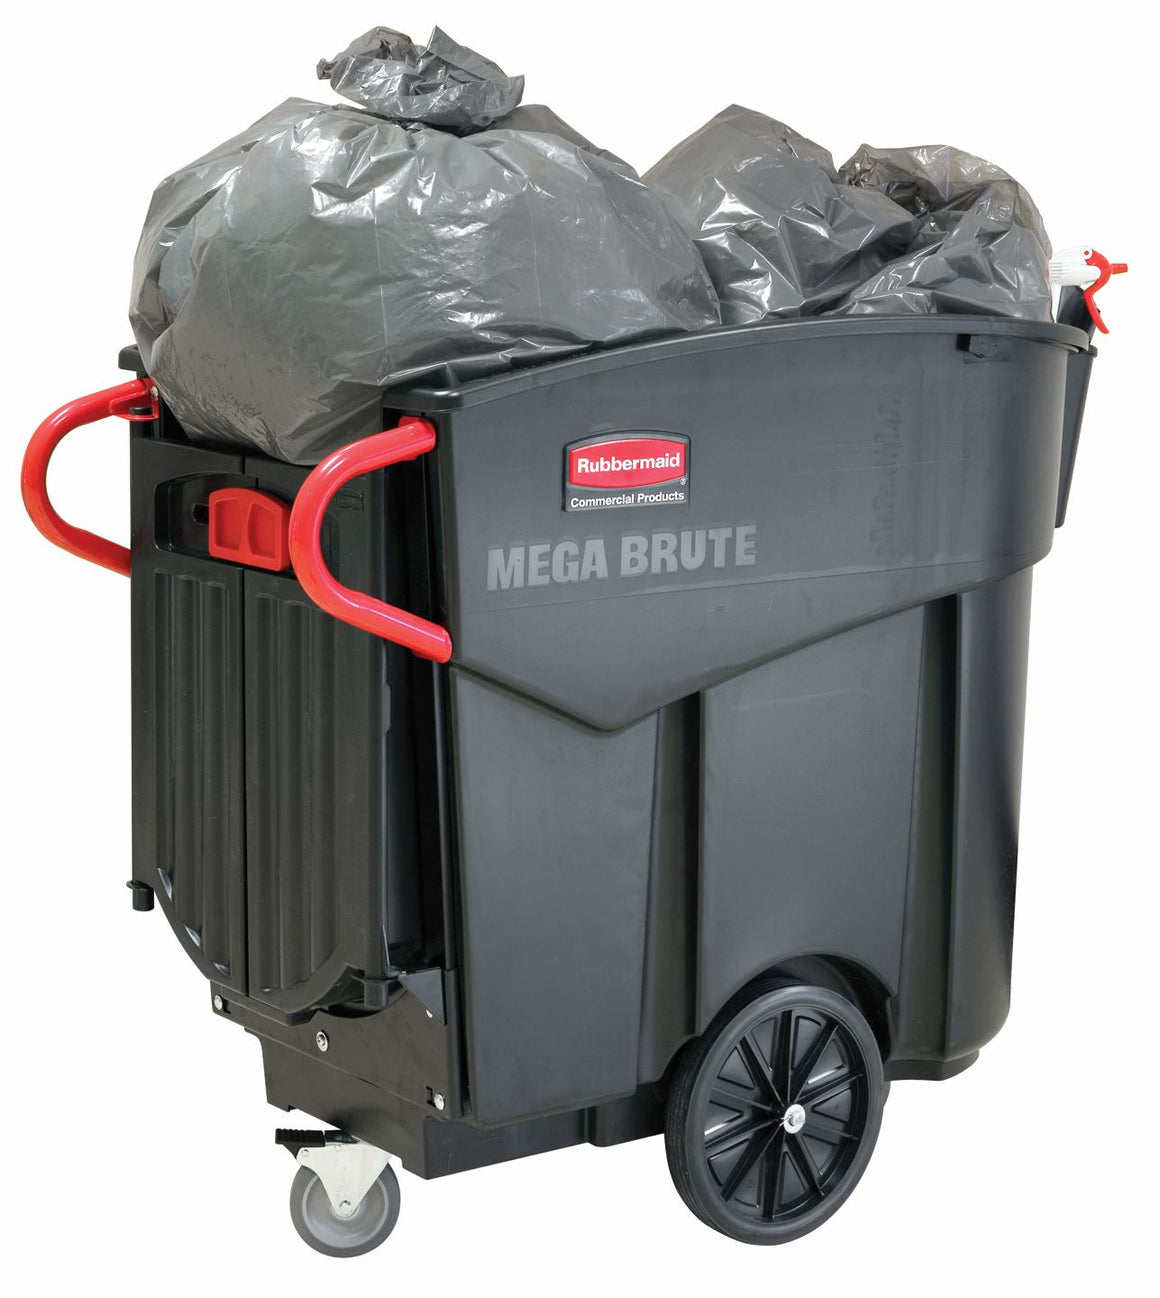 120gall MEGA BRUTE MOBILE WASTE COLLECTOR 1PK